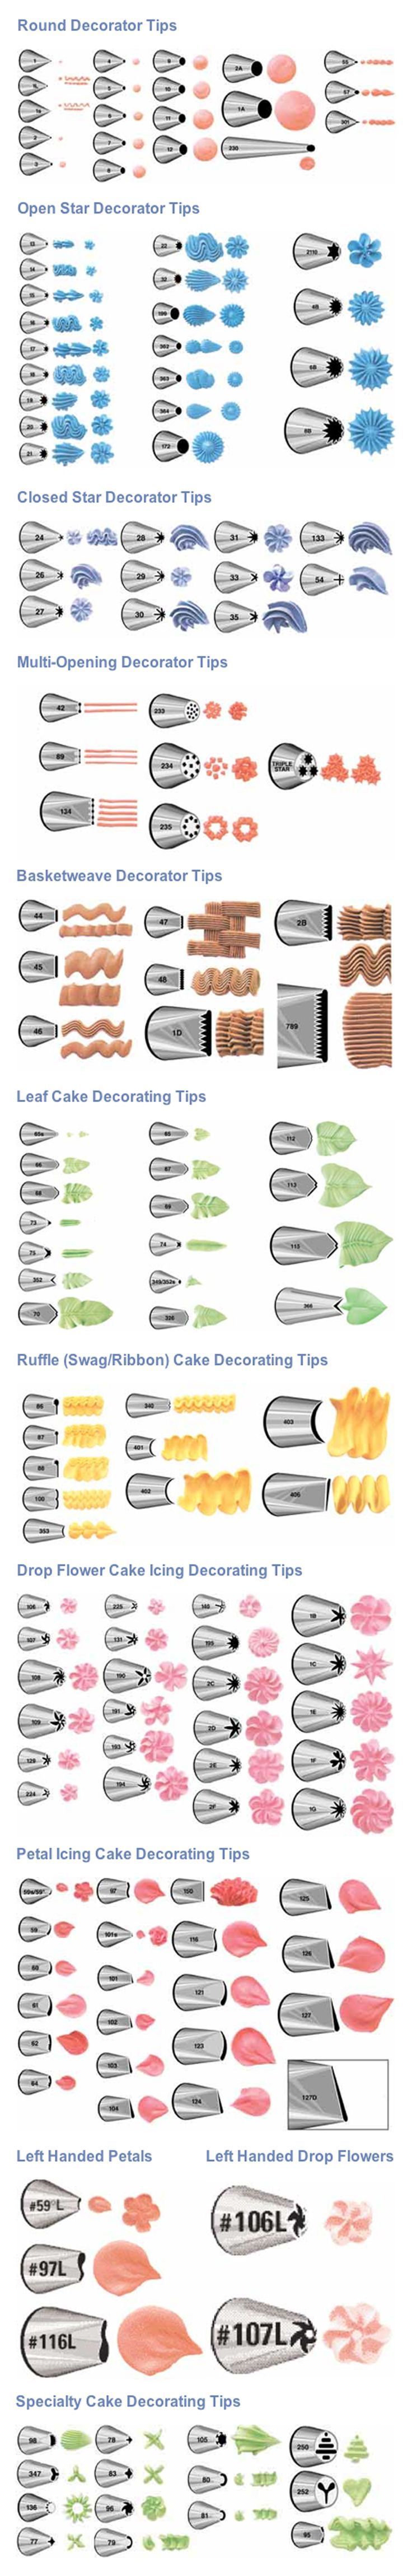 Decorator Tips top 25+ best frosting tips ideas on pinterest | cupcake decorating